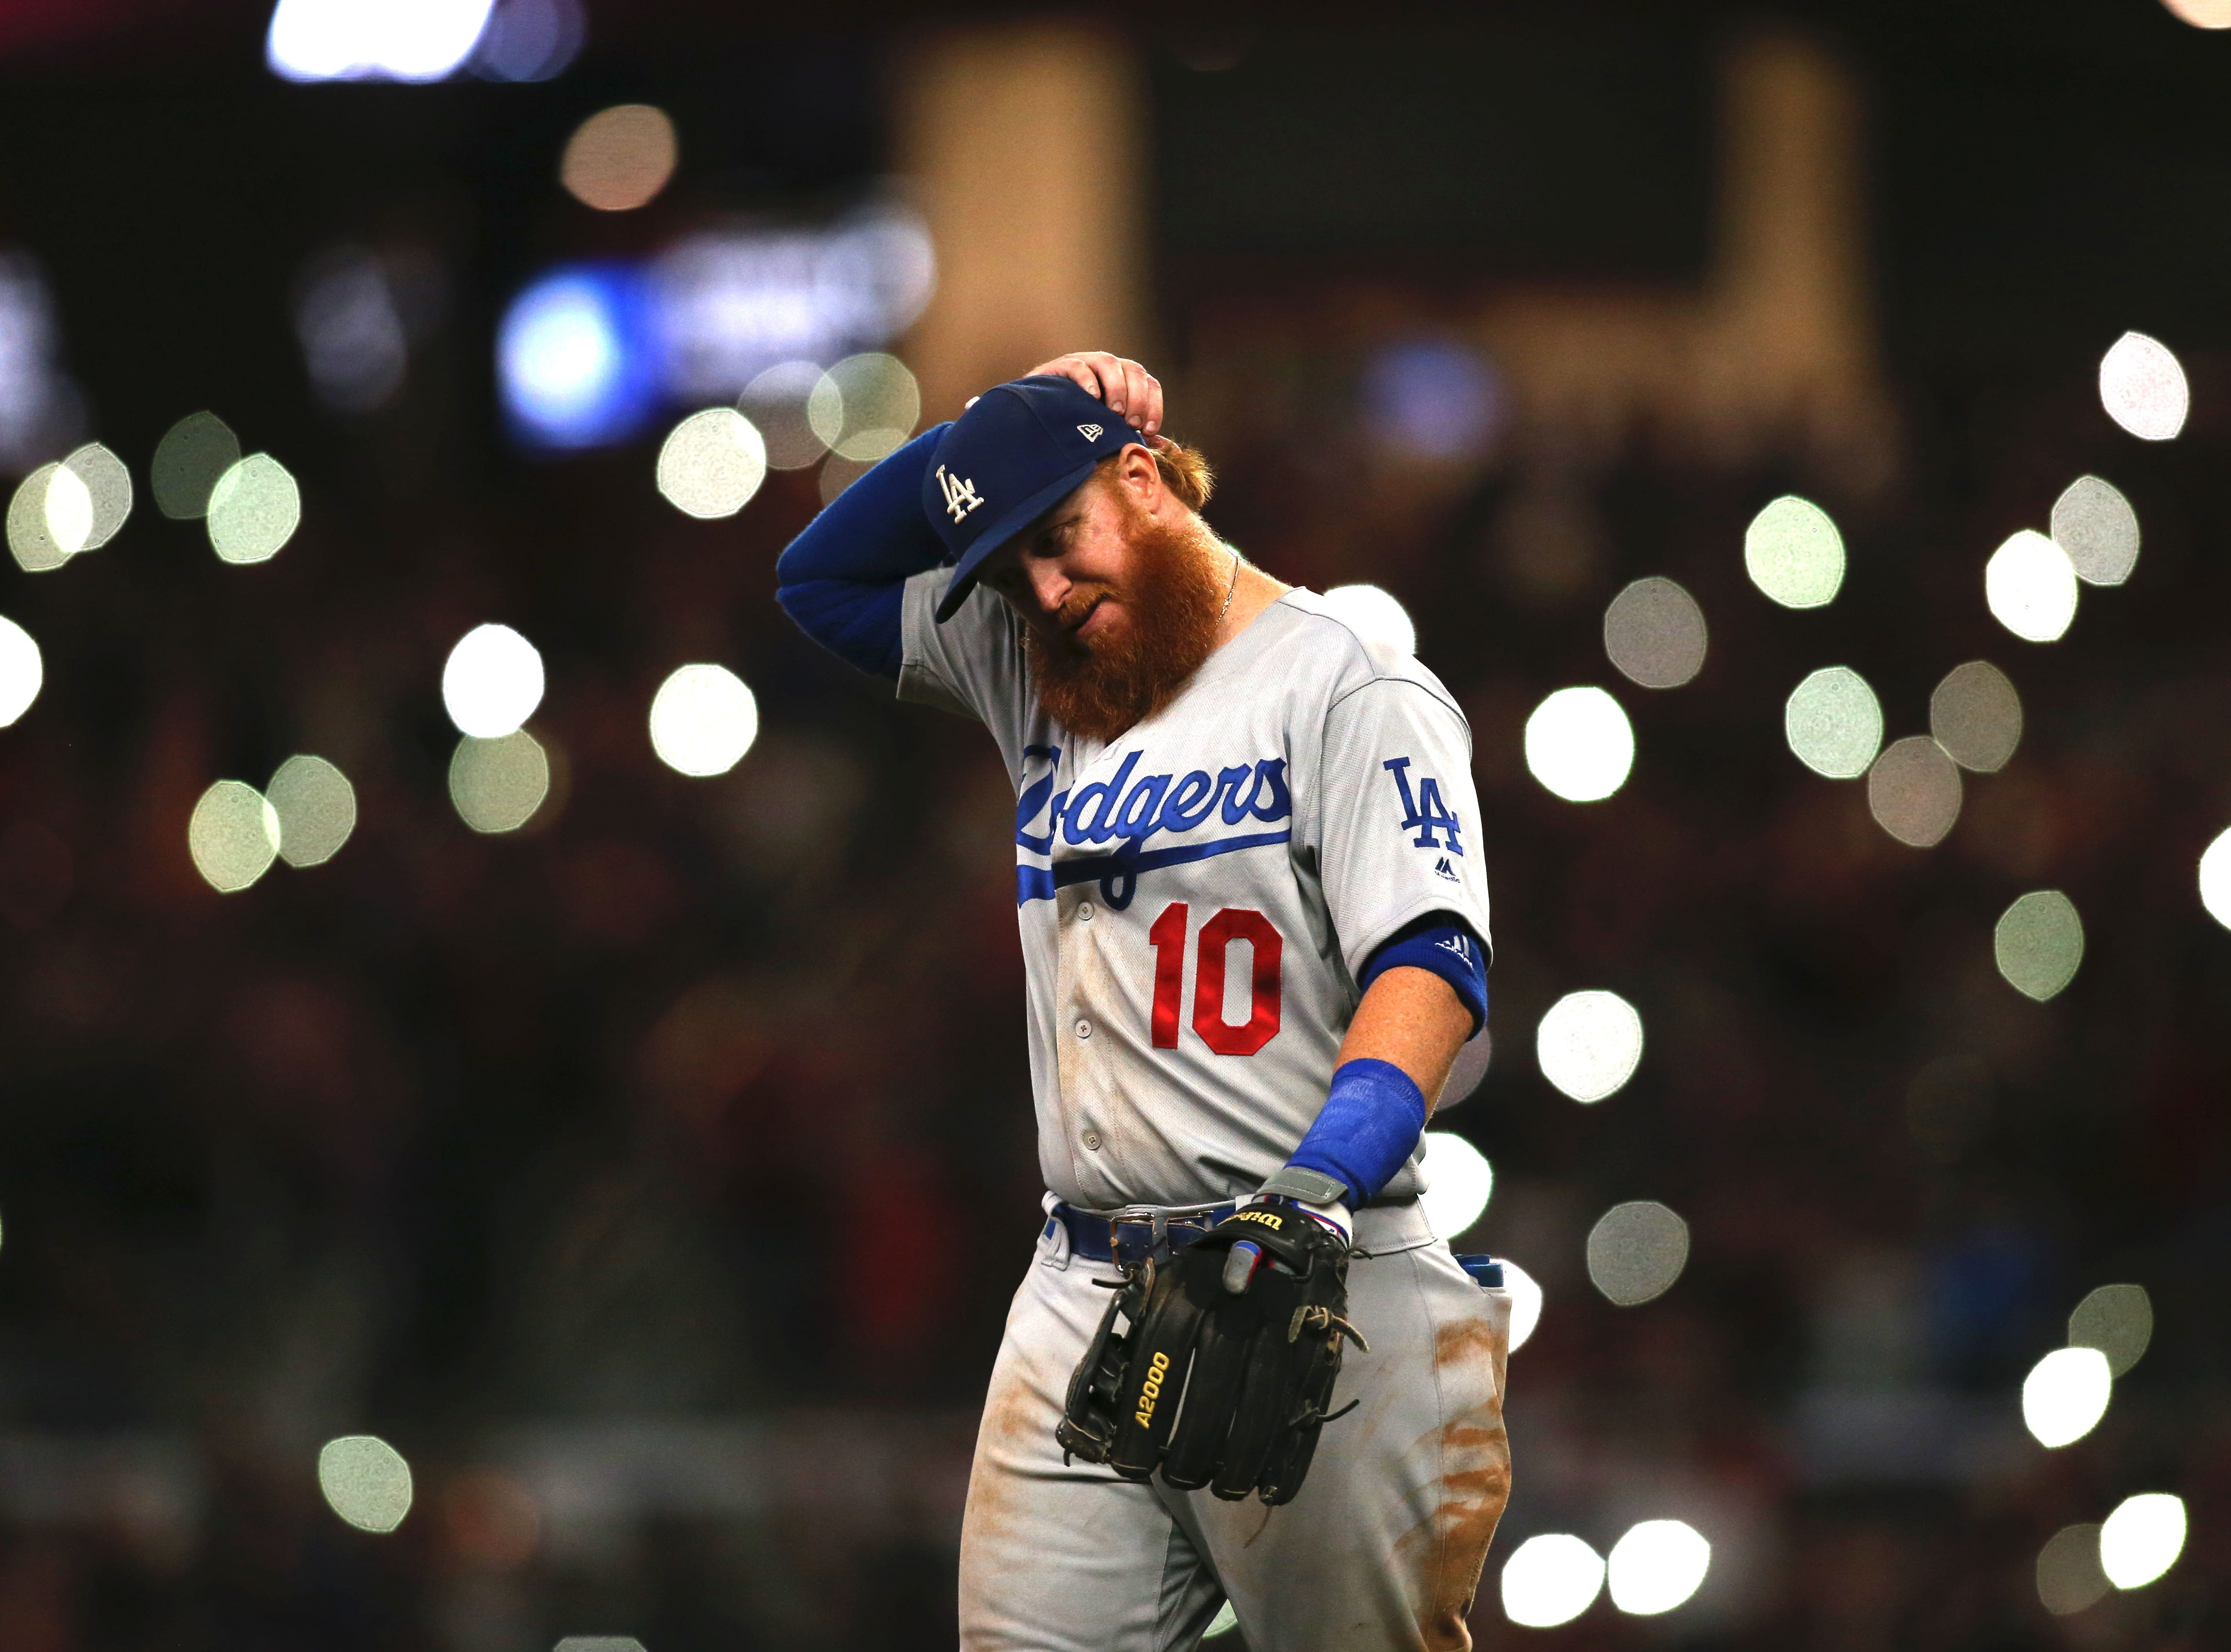 NLDS Game 4: Dodgers third baseman Justin Turner waits during a pitching change.